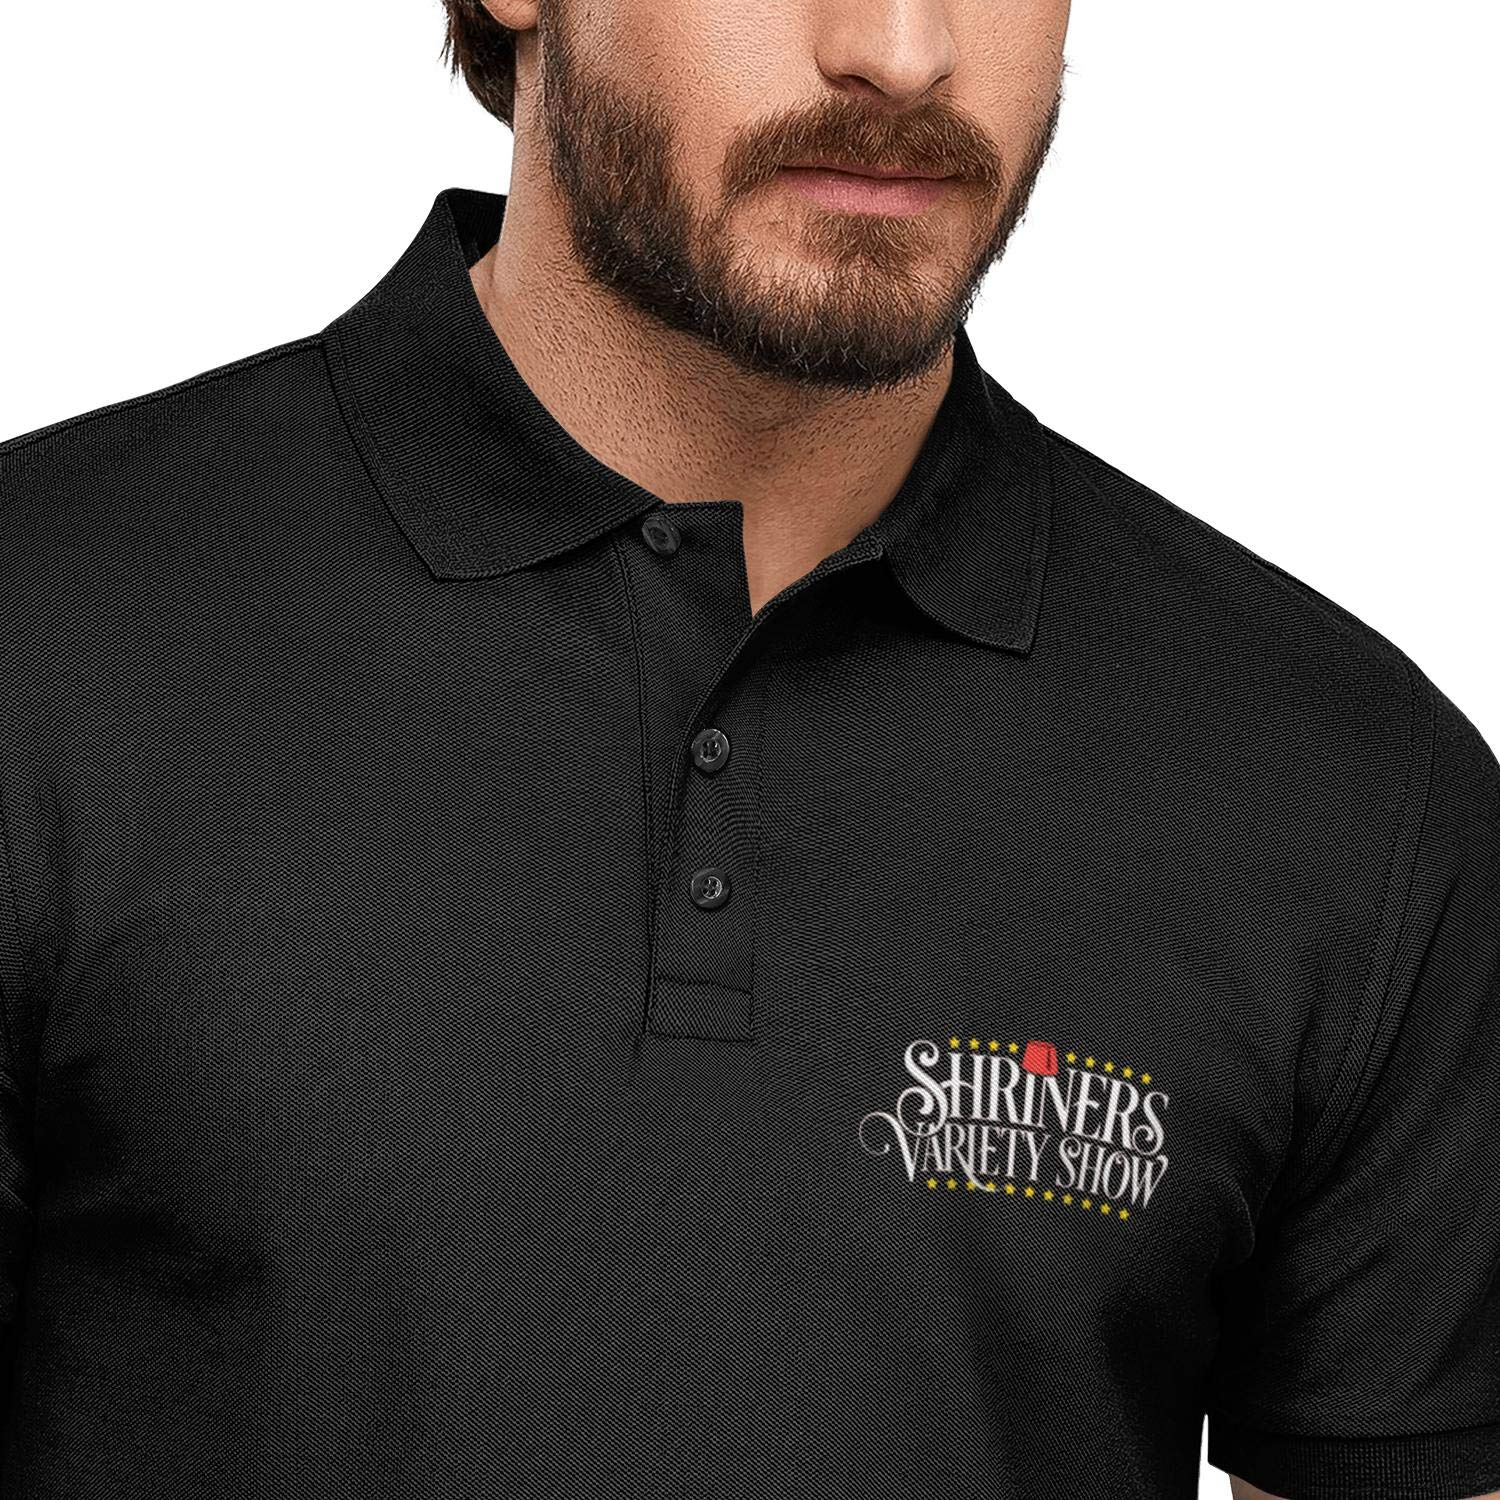 FPPING Shriners Variety Show Printed Mens Tropical Beach Polo Shirt Cotton Shirt